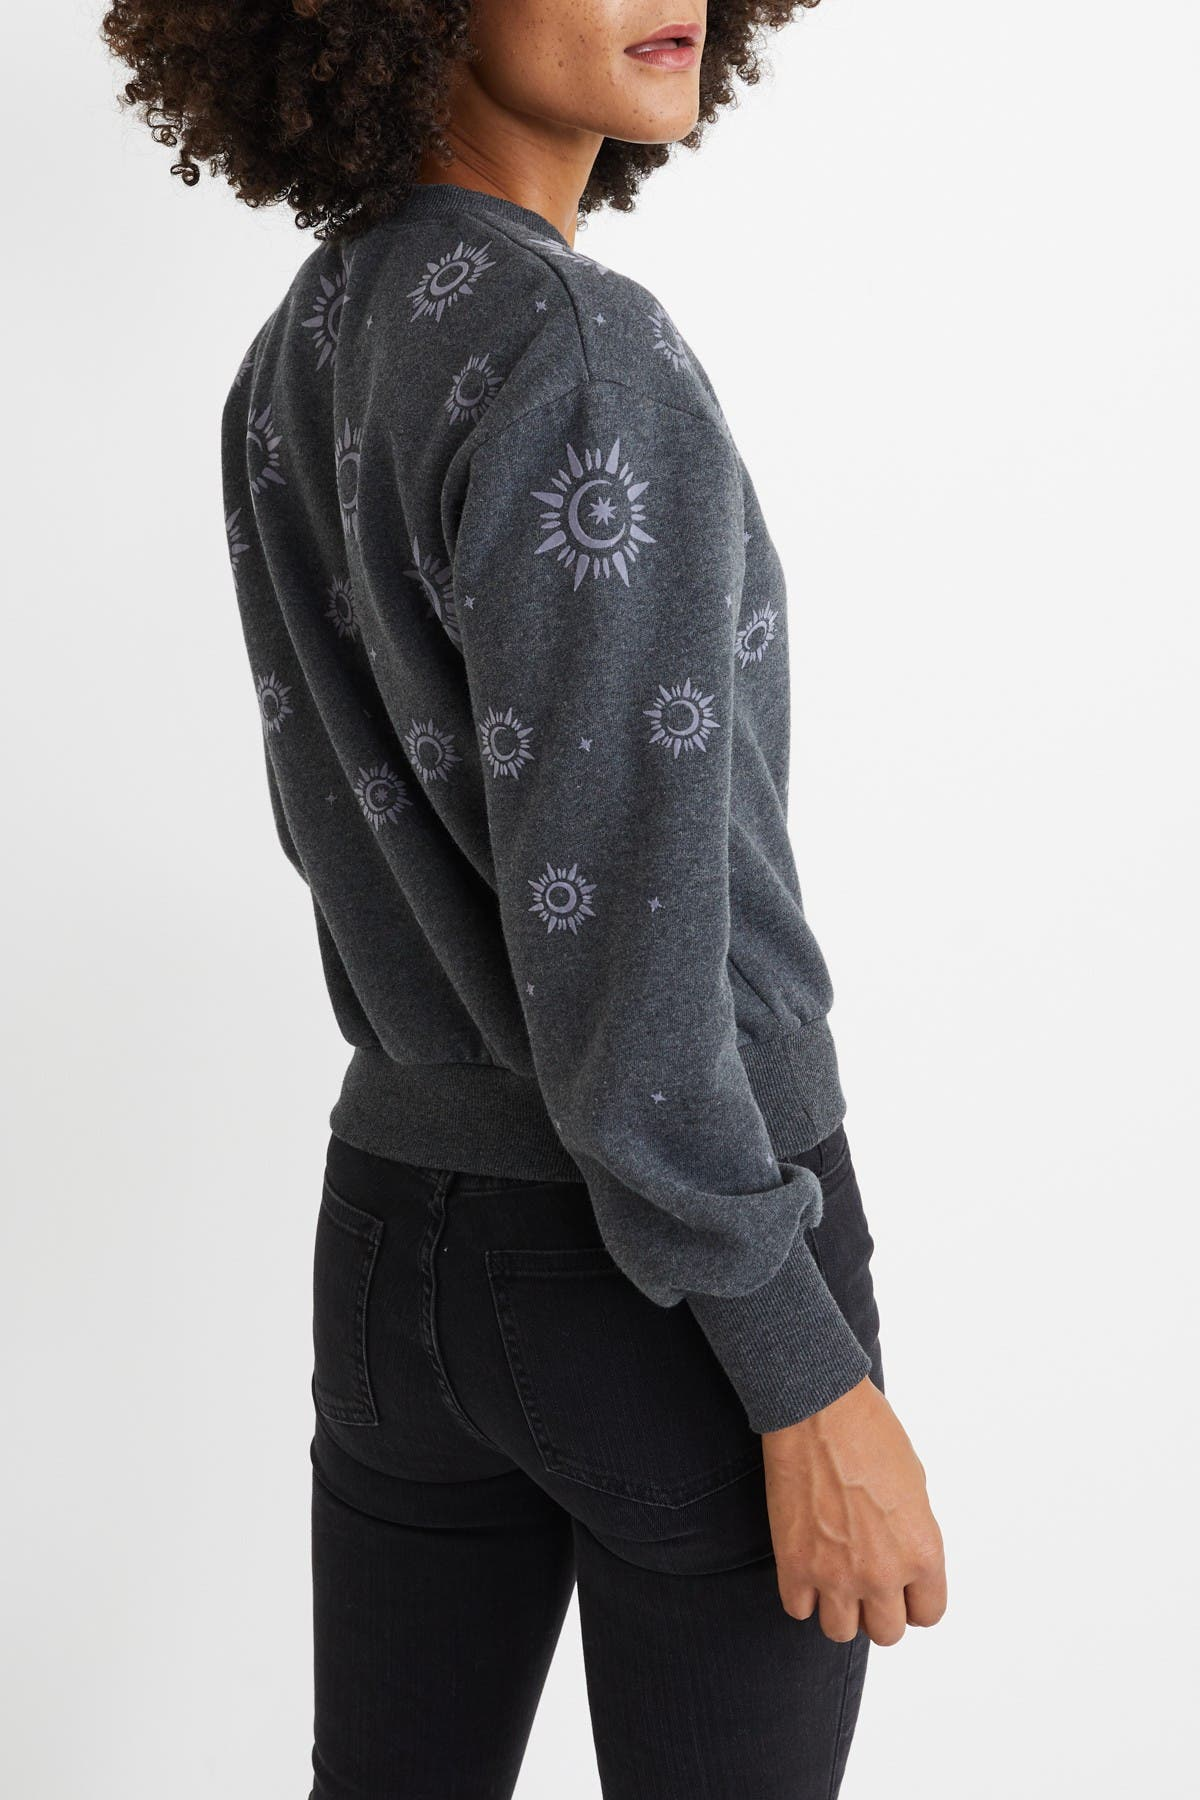 Image of Marine Layer Rue Flocked Design Sweatshirt